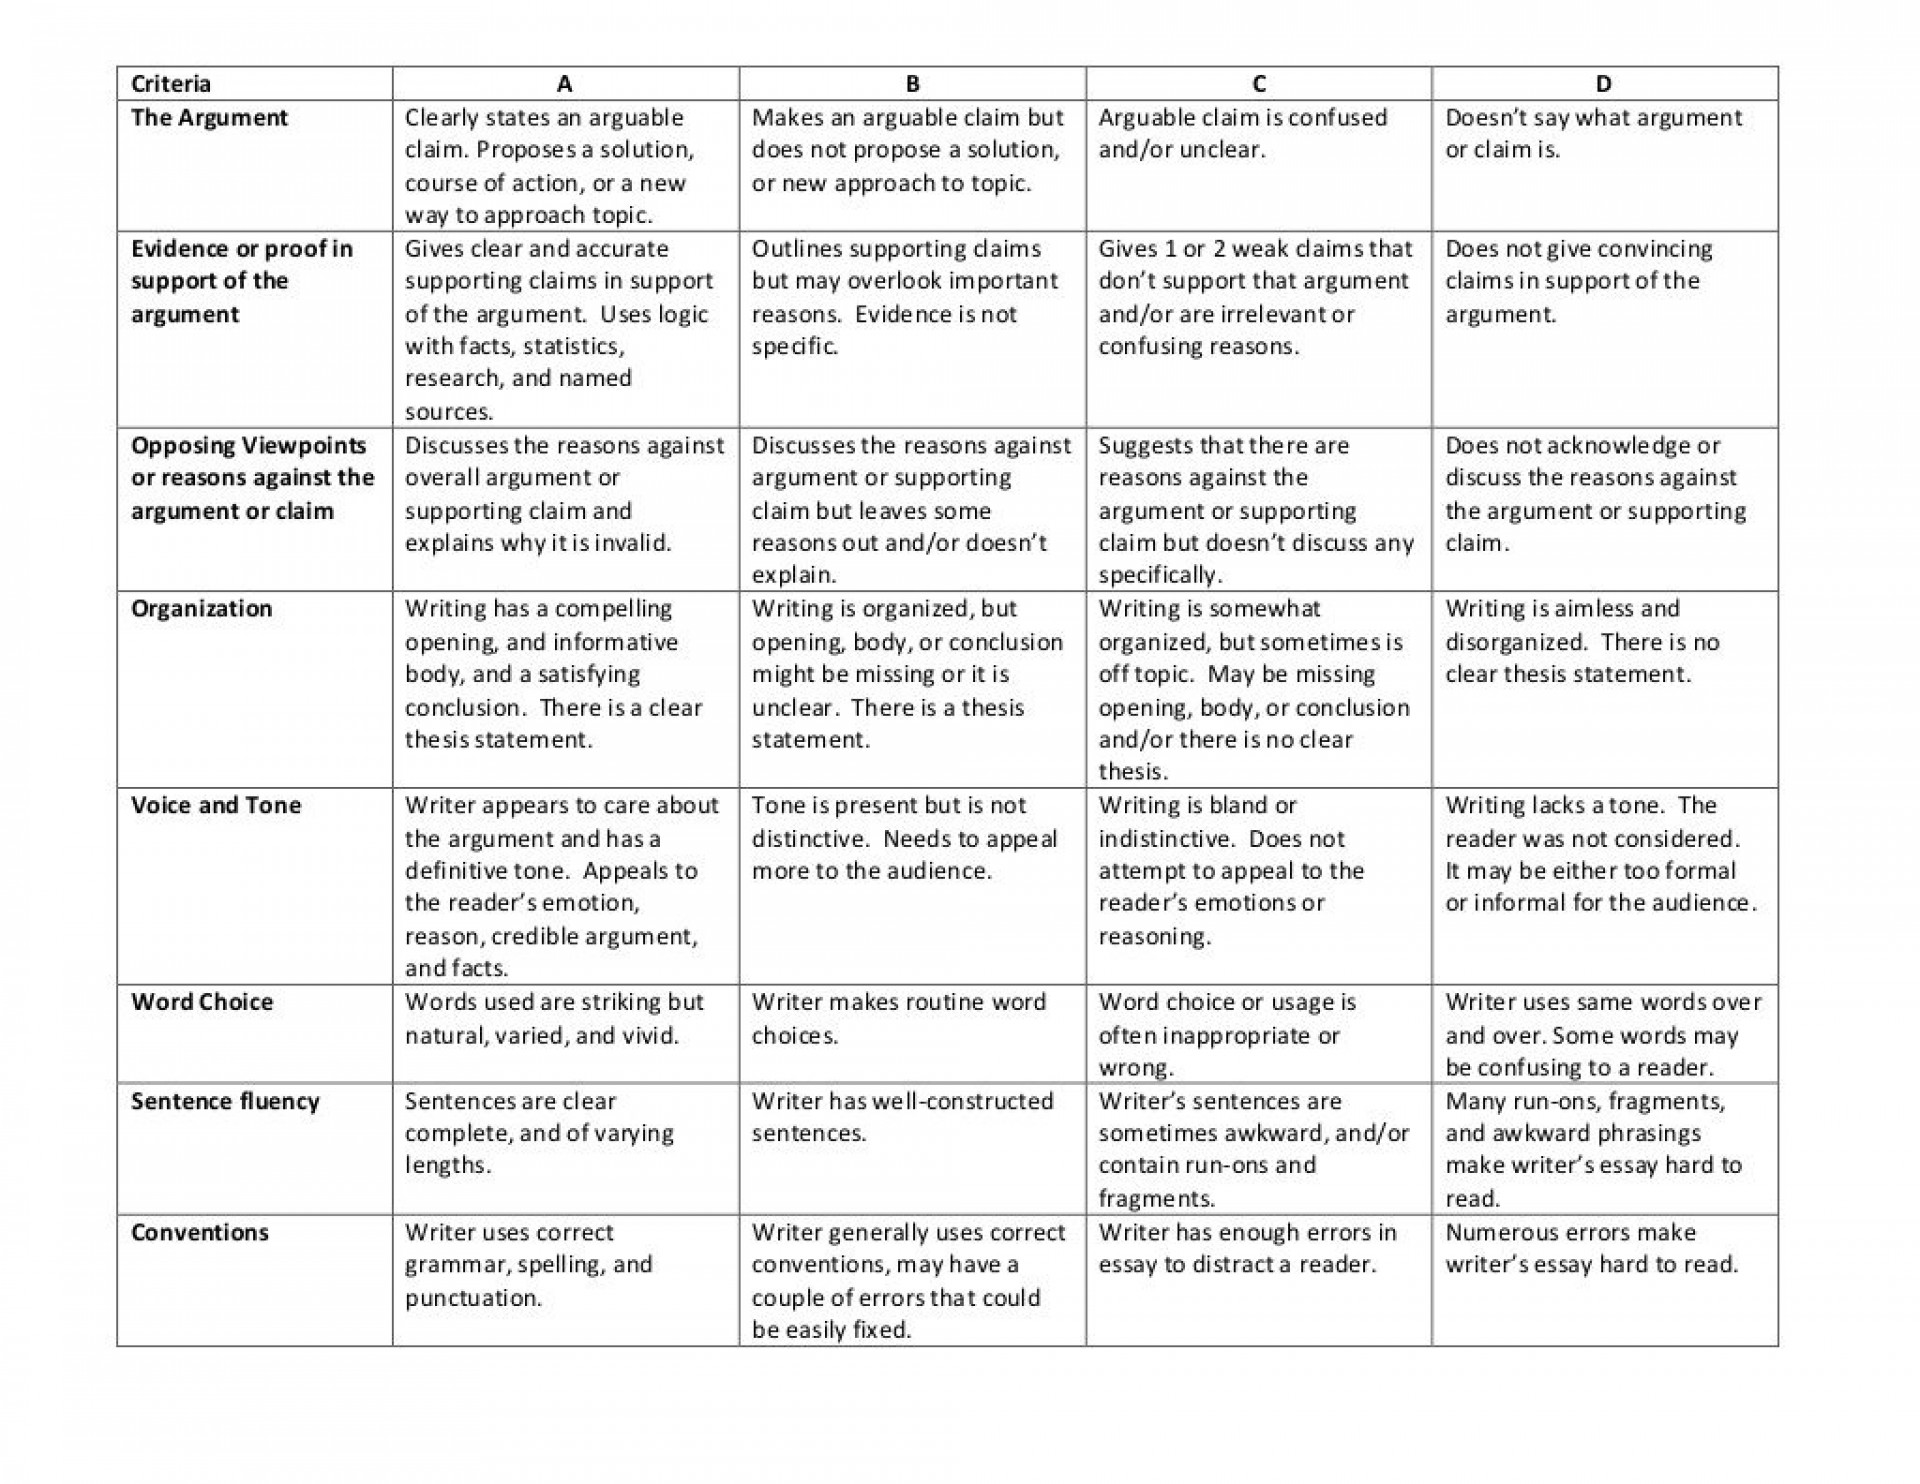 007 Research Paper English Marvelous 101 Rubric 1920